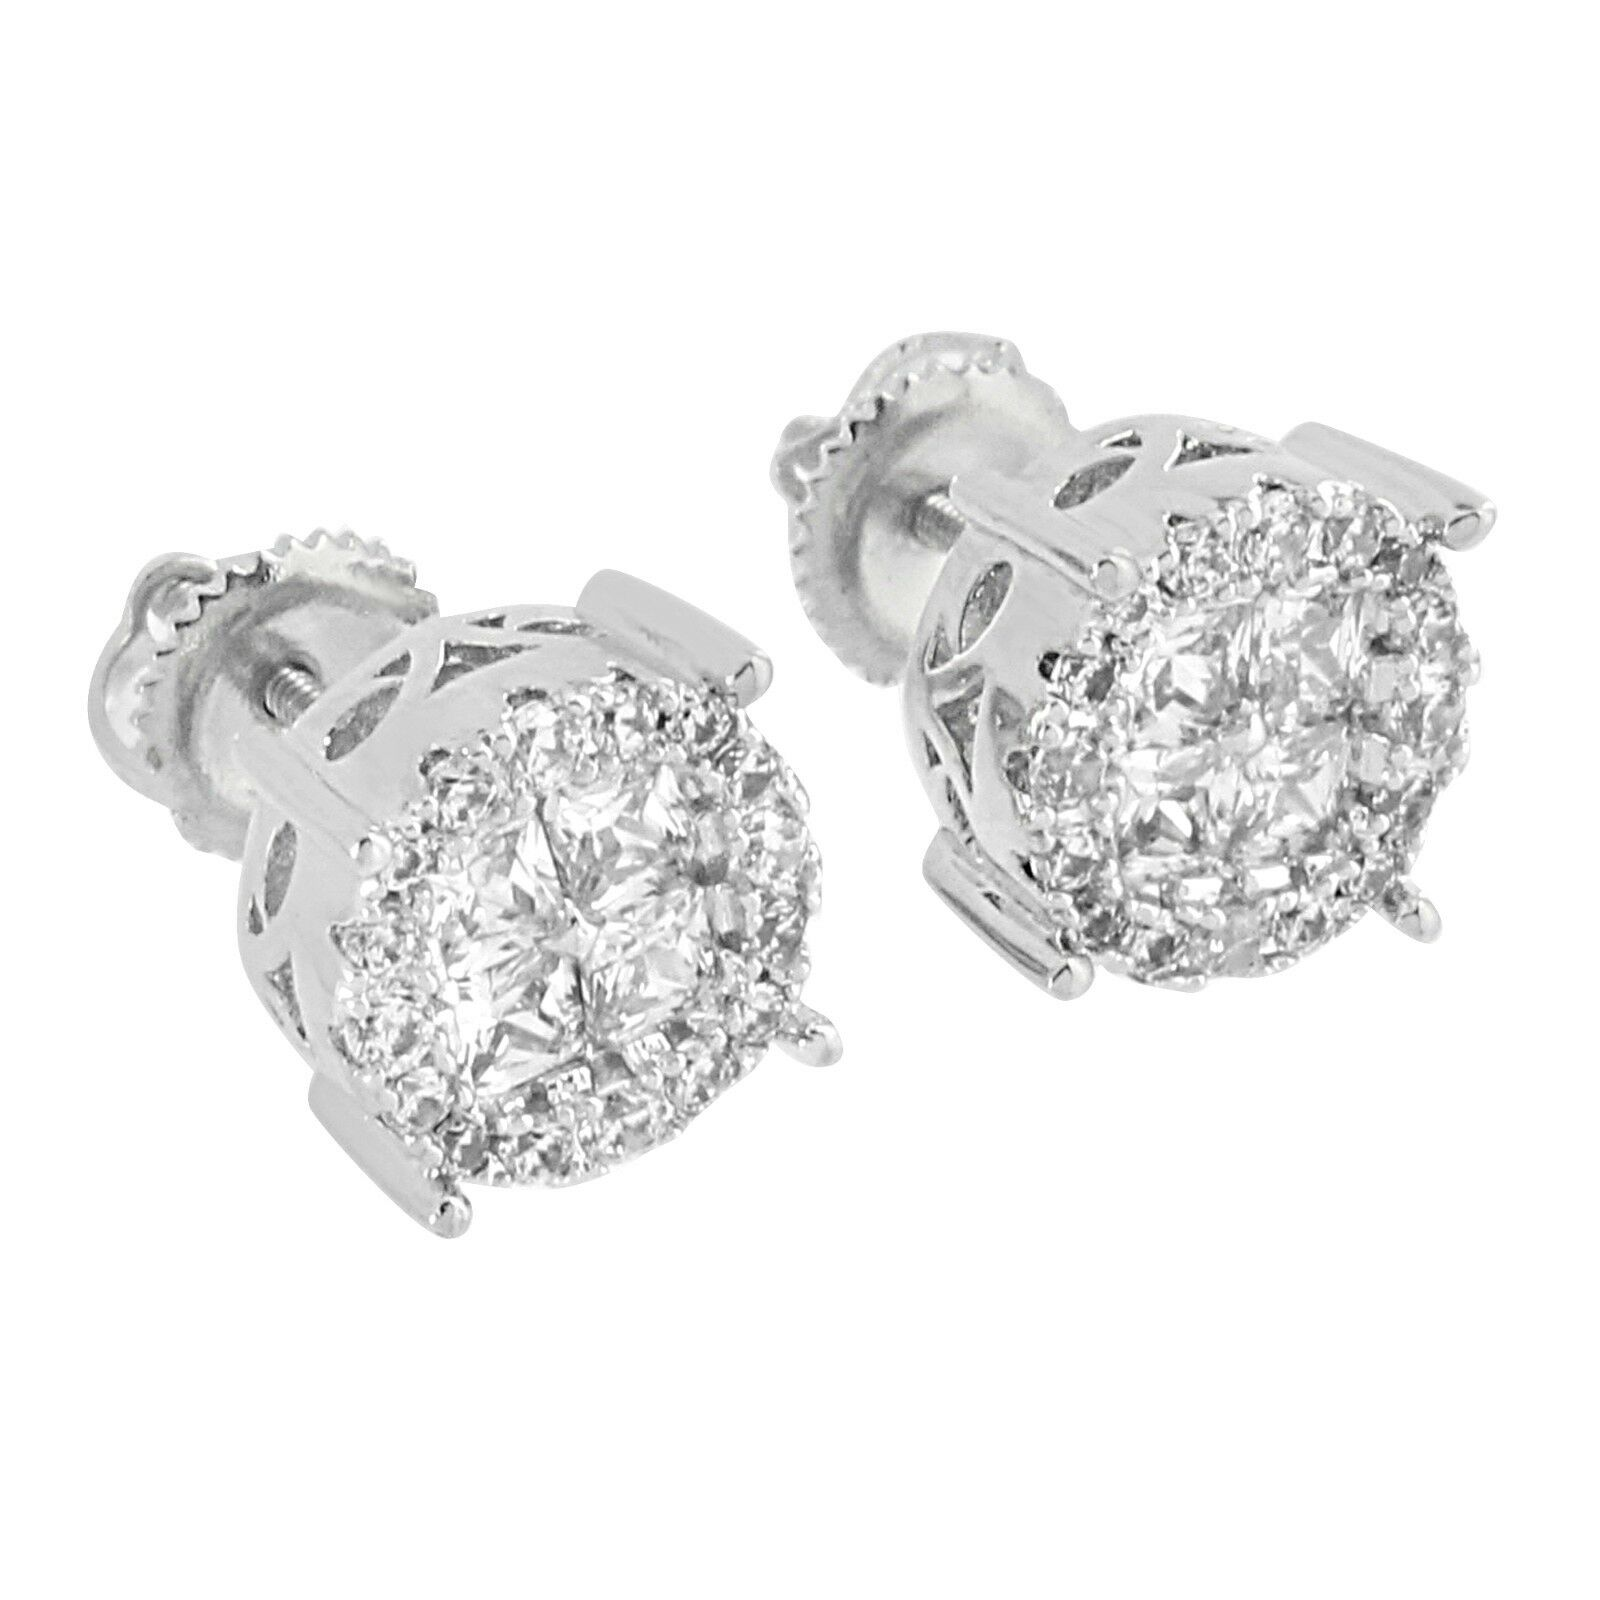 choosing wixon you round choose how images which earrings to faceshape credit the emmagem best for face jewelers are